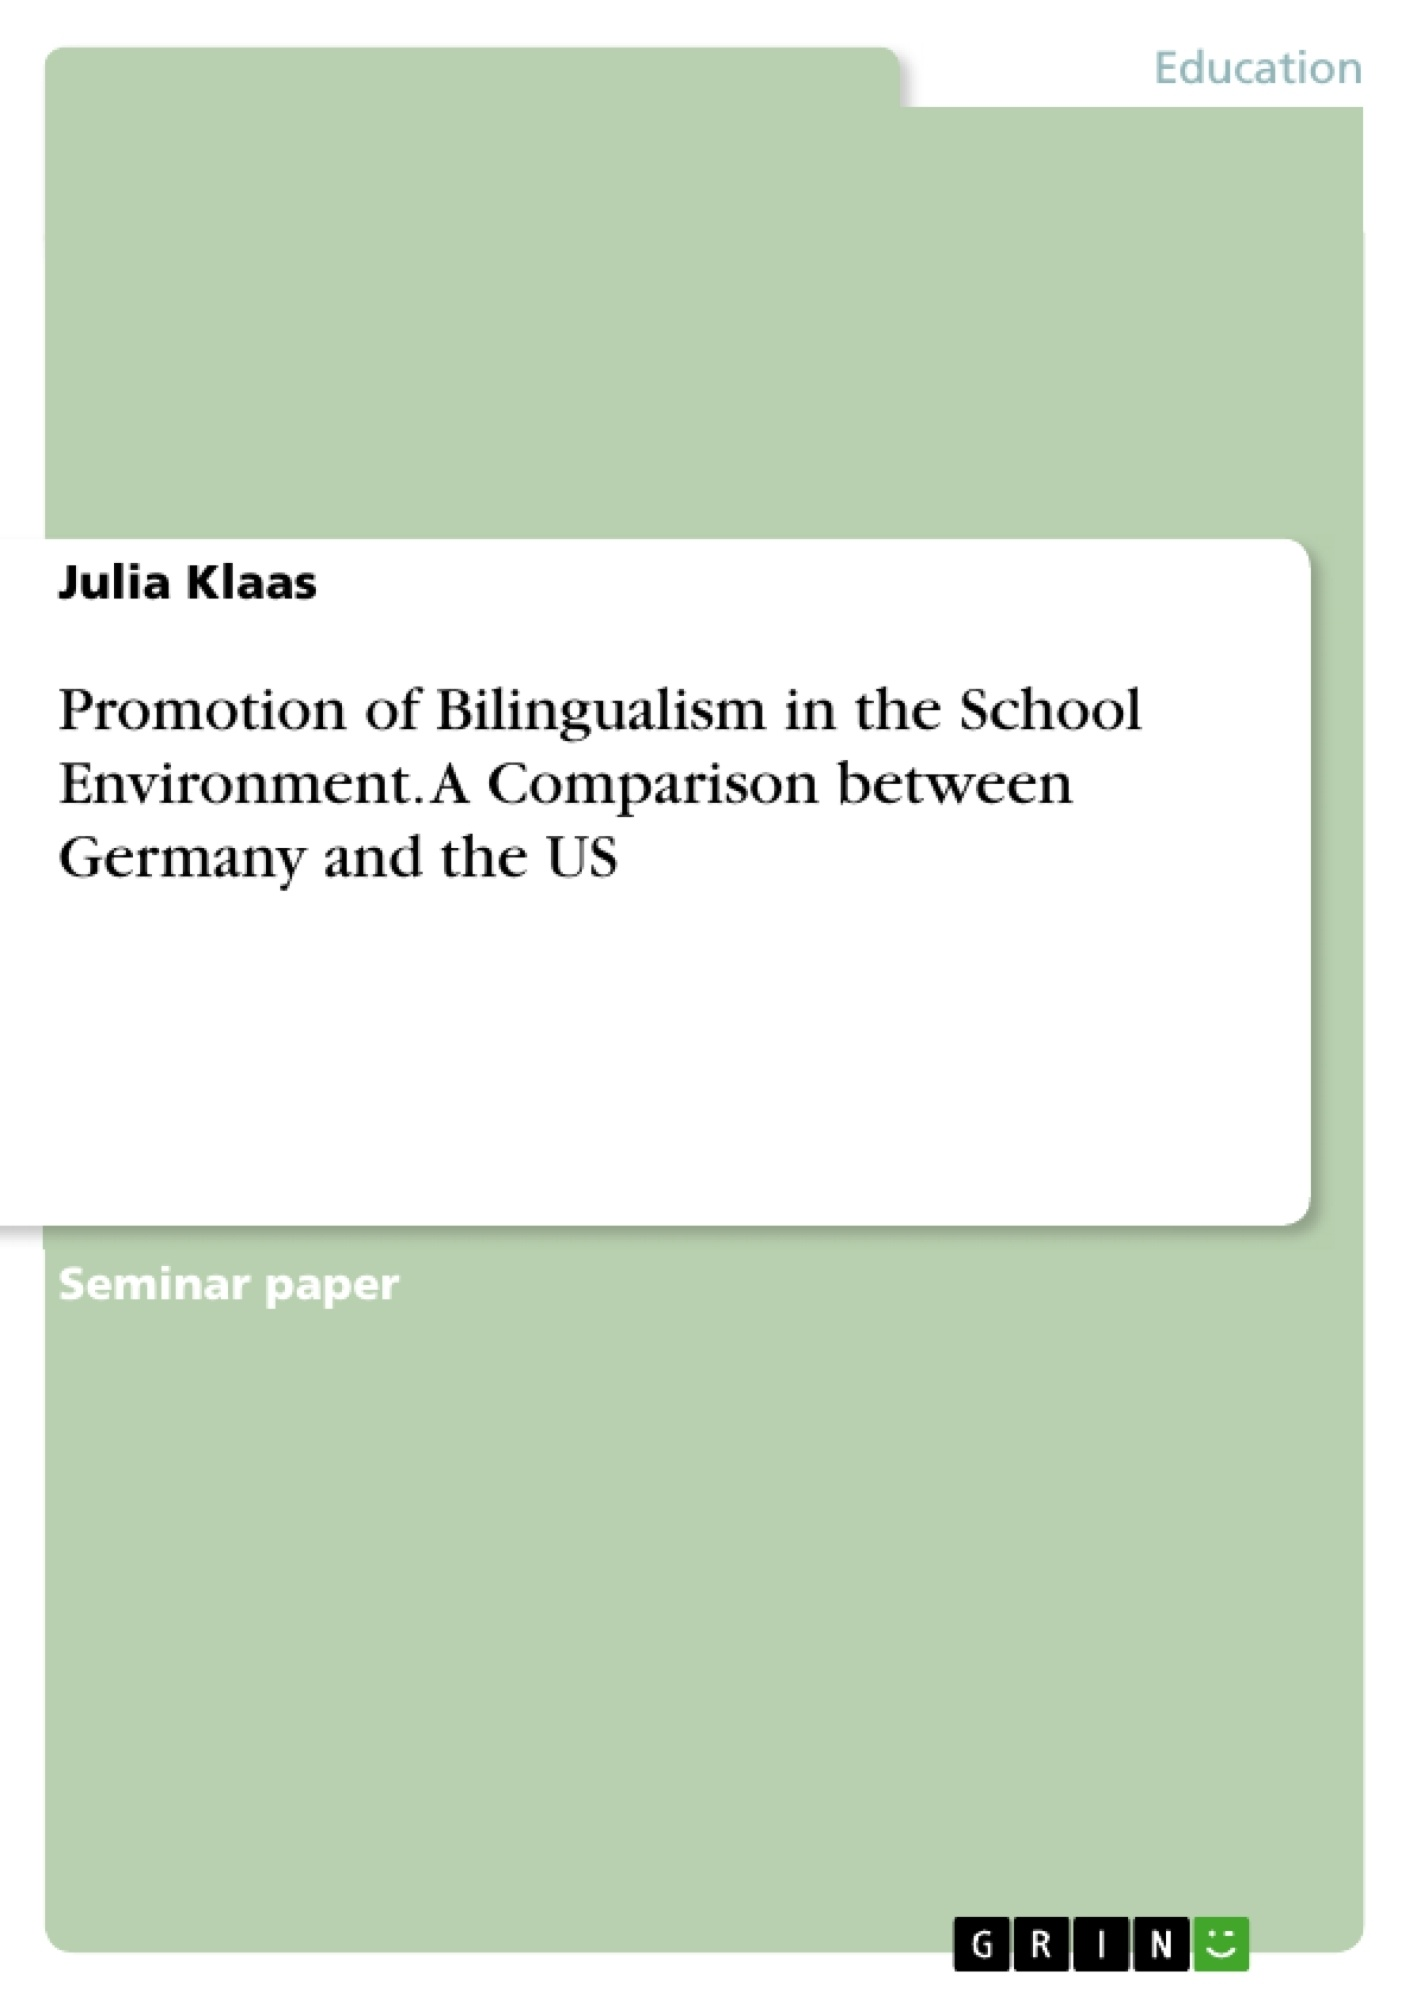 GRIN - Promotion of Bilingualism in the School Environment  A Comparison  Between Germany and the US